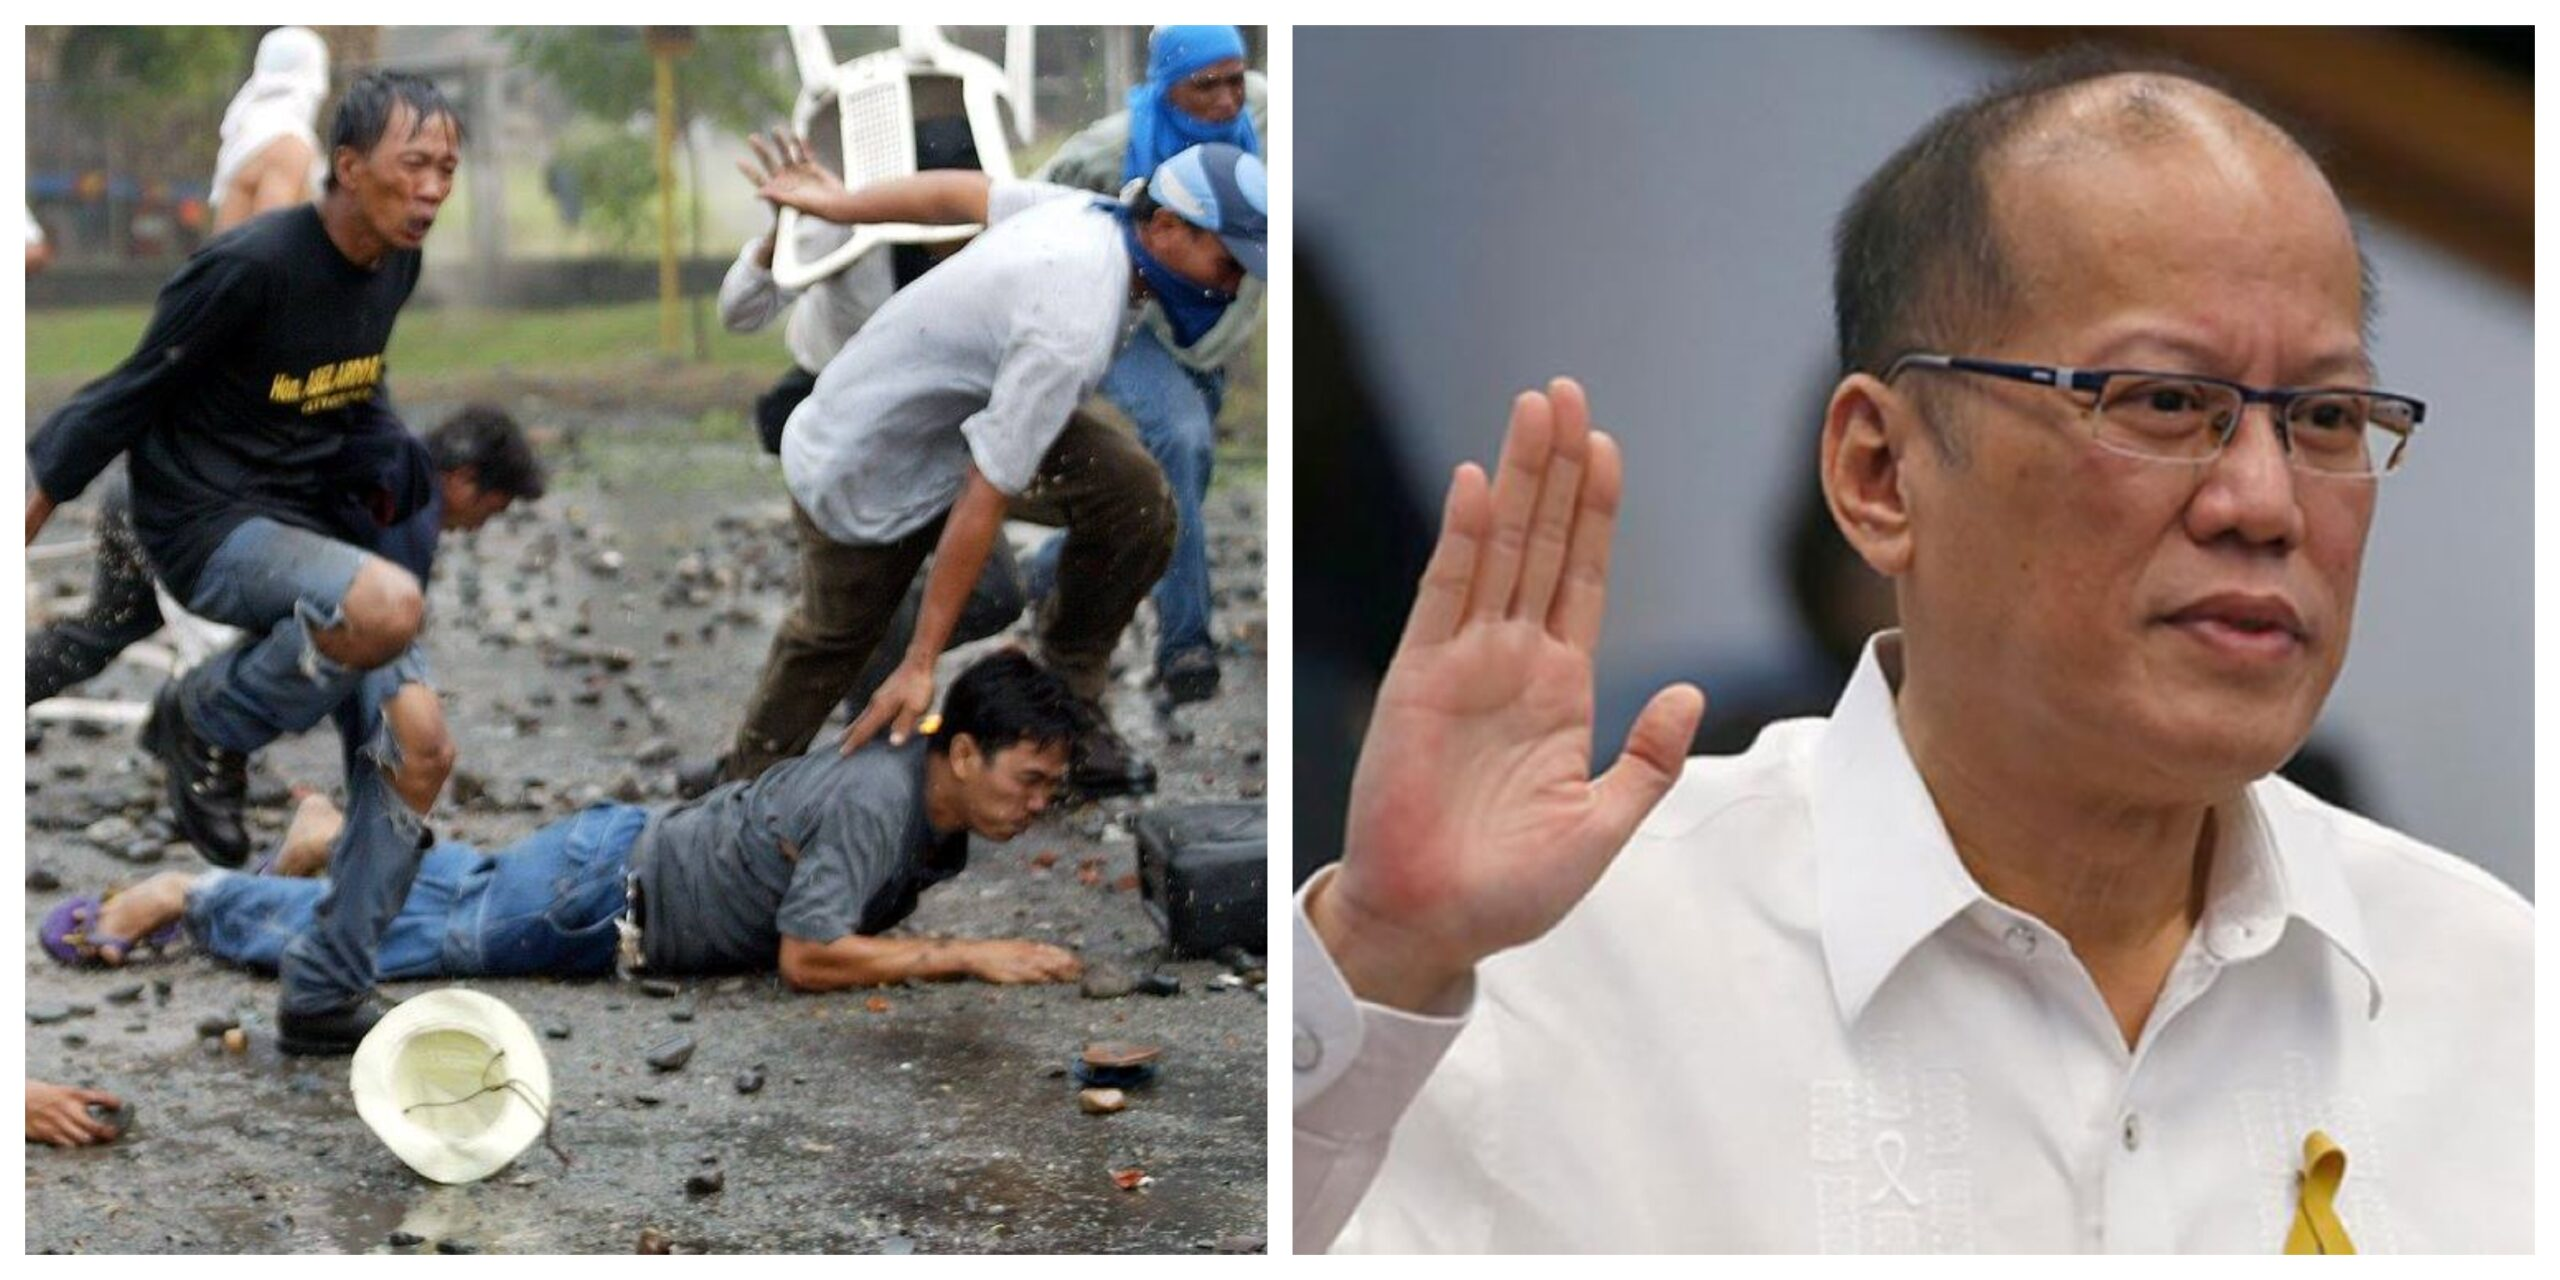 Hacienda Luisita Massacre Benigno Noynoy Aquino III photo collage